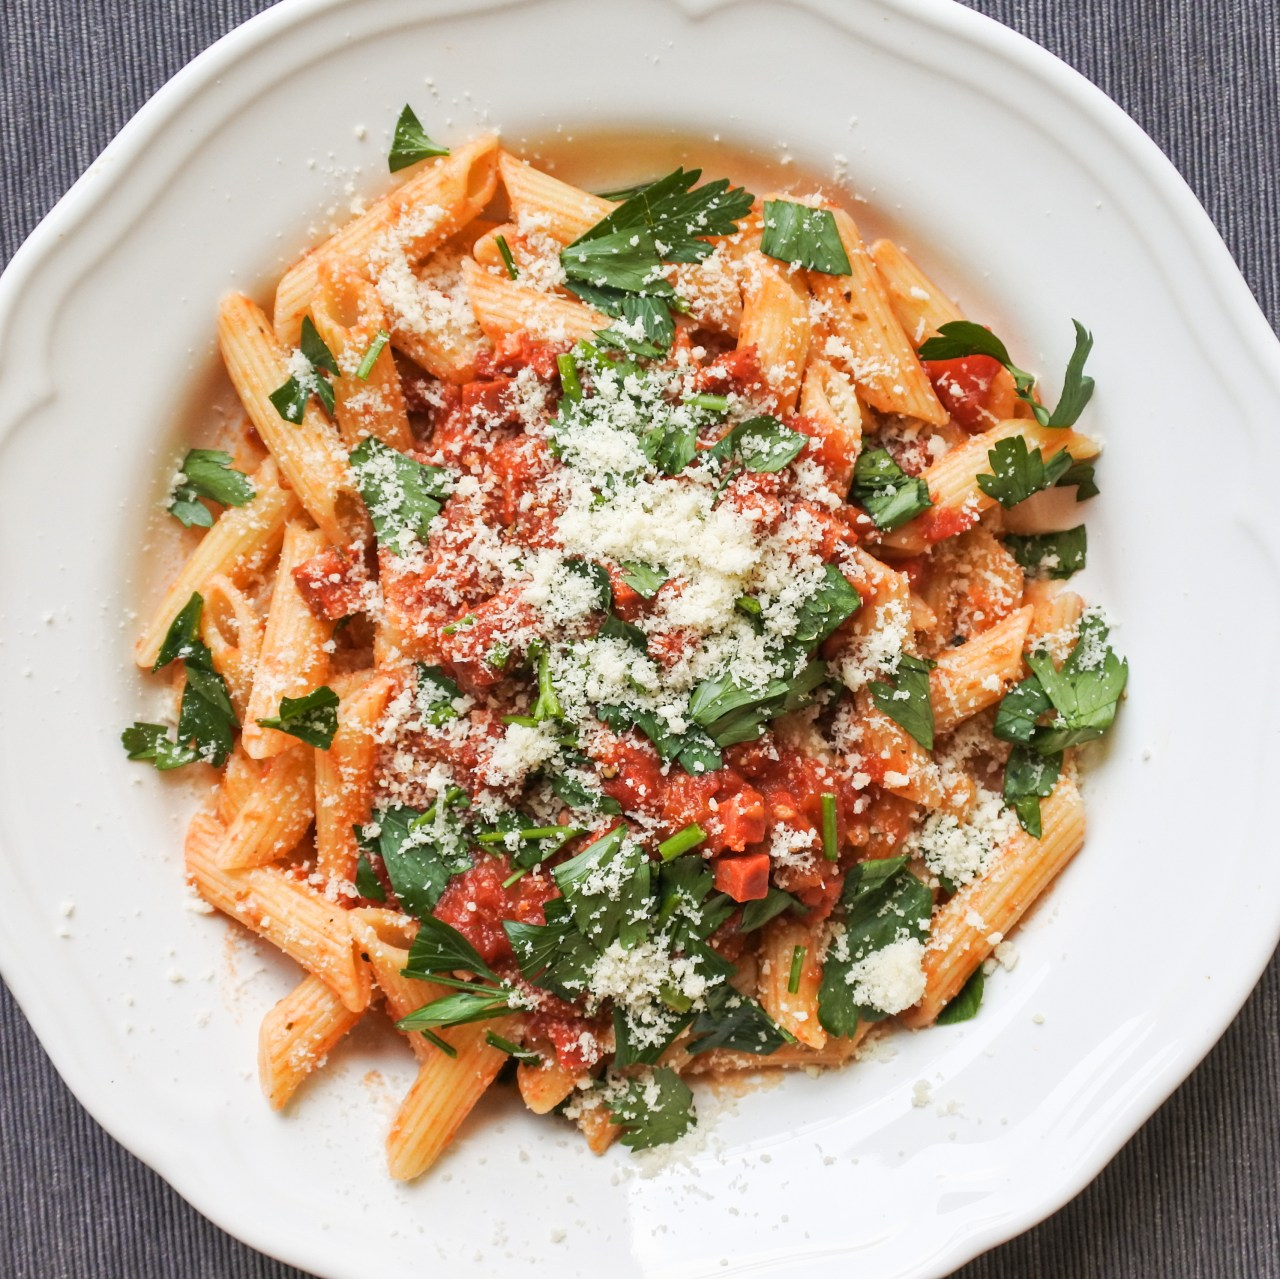 Penne pasta covered in a tomato and chorizo sauce and garnished with chopped Italian parsley and grated cheese